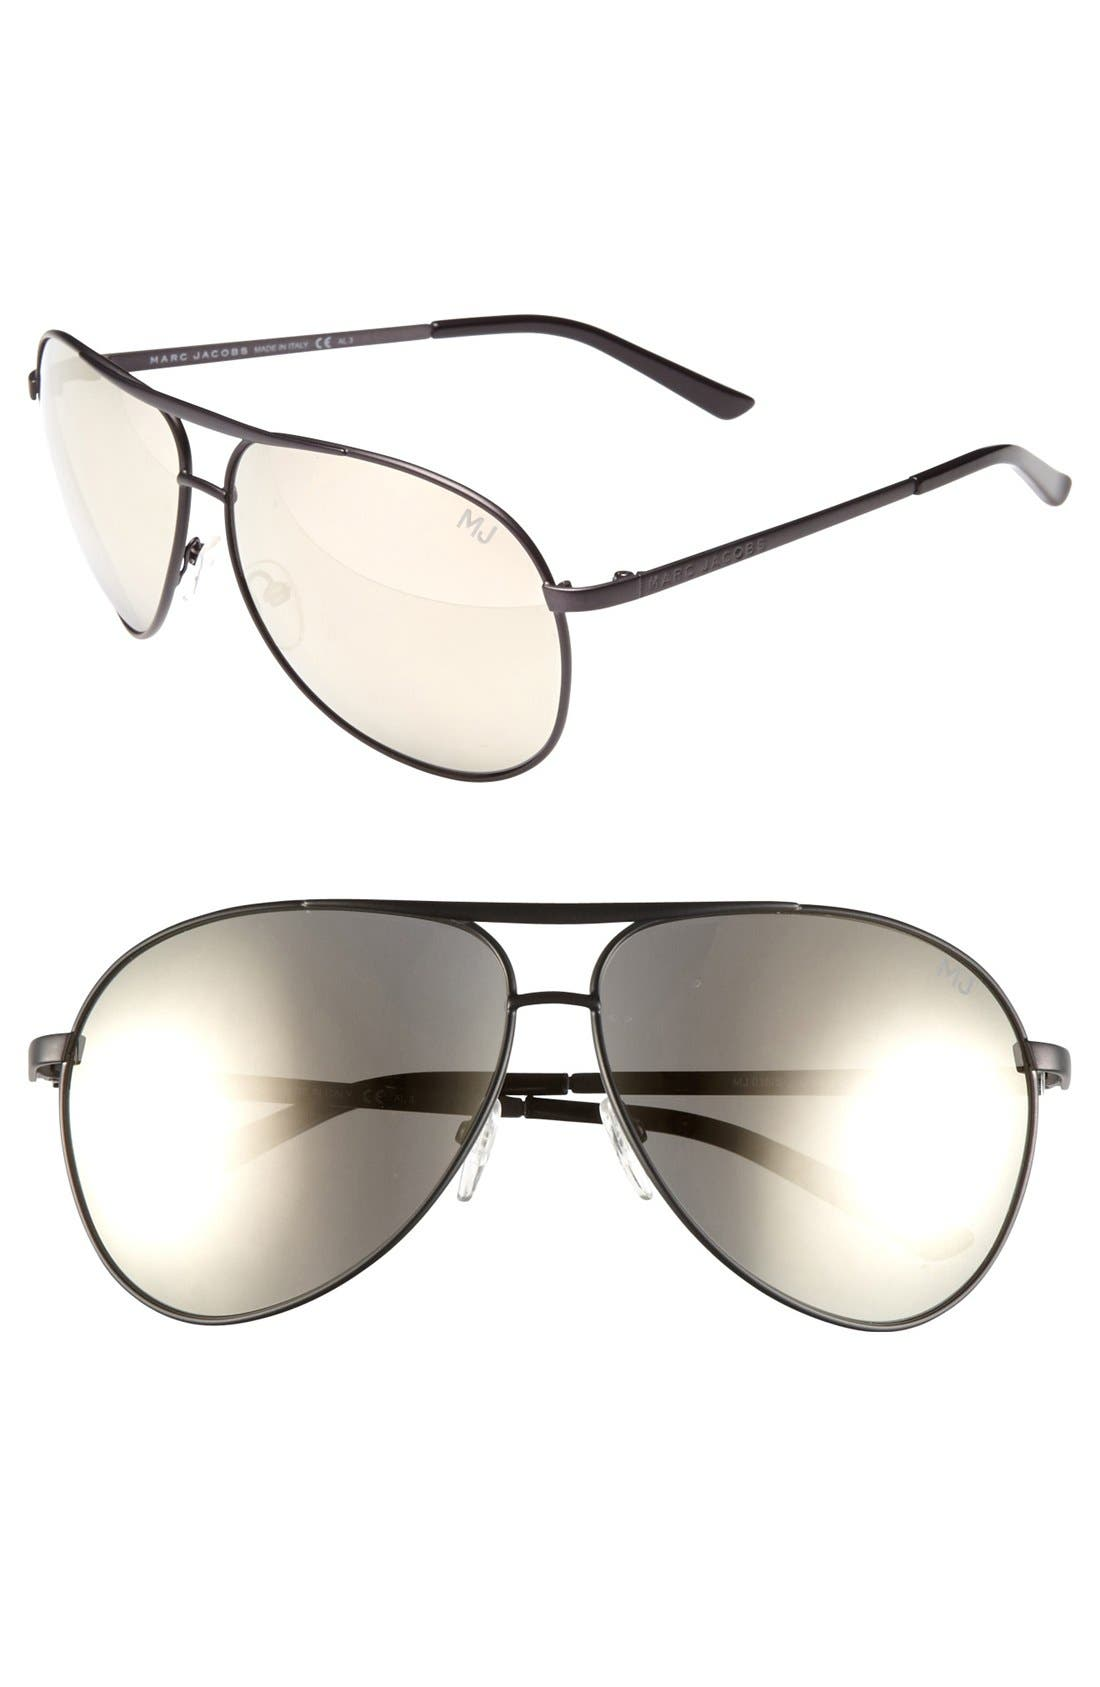 Main Image - MARC JACOBS 'Signature' 62mm Metal Aviator Sunglasses